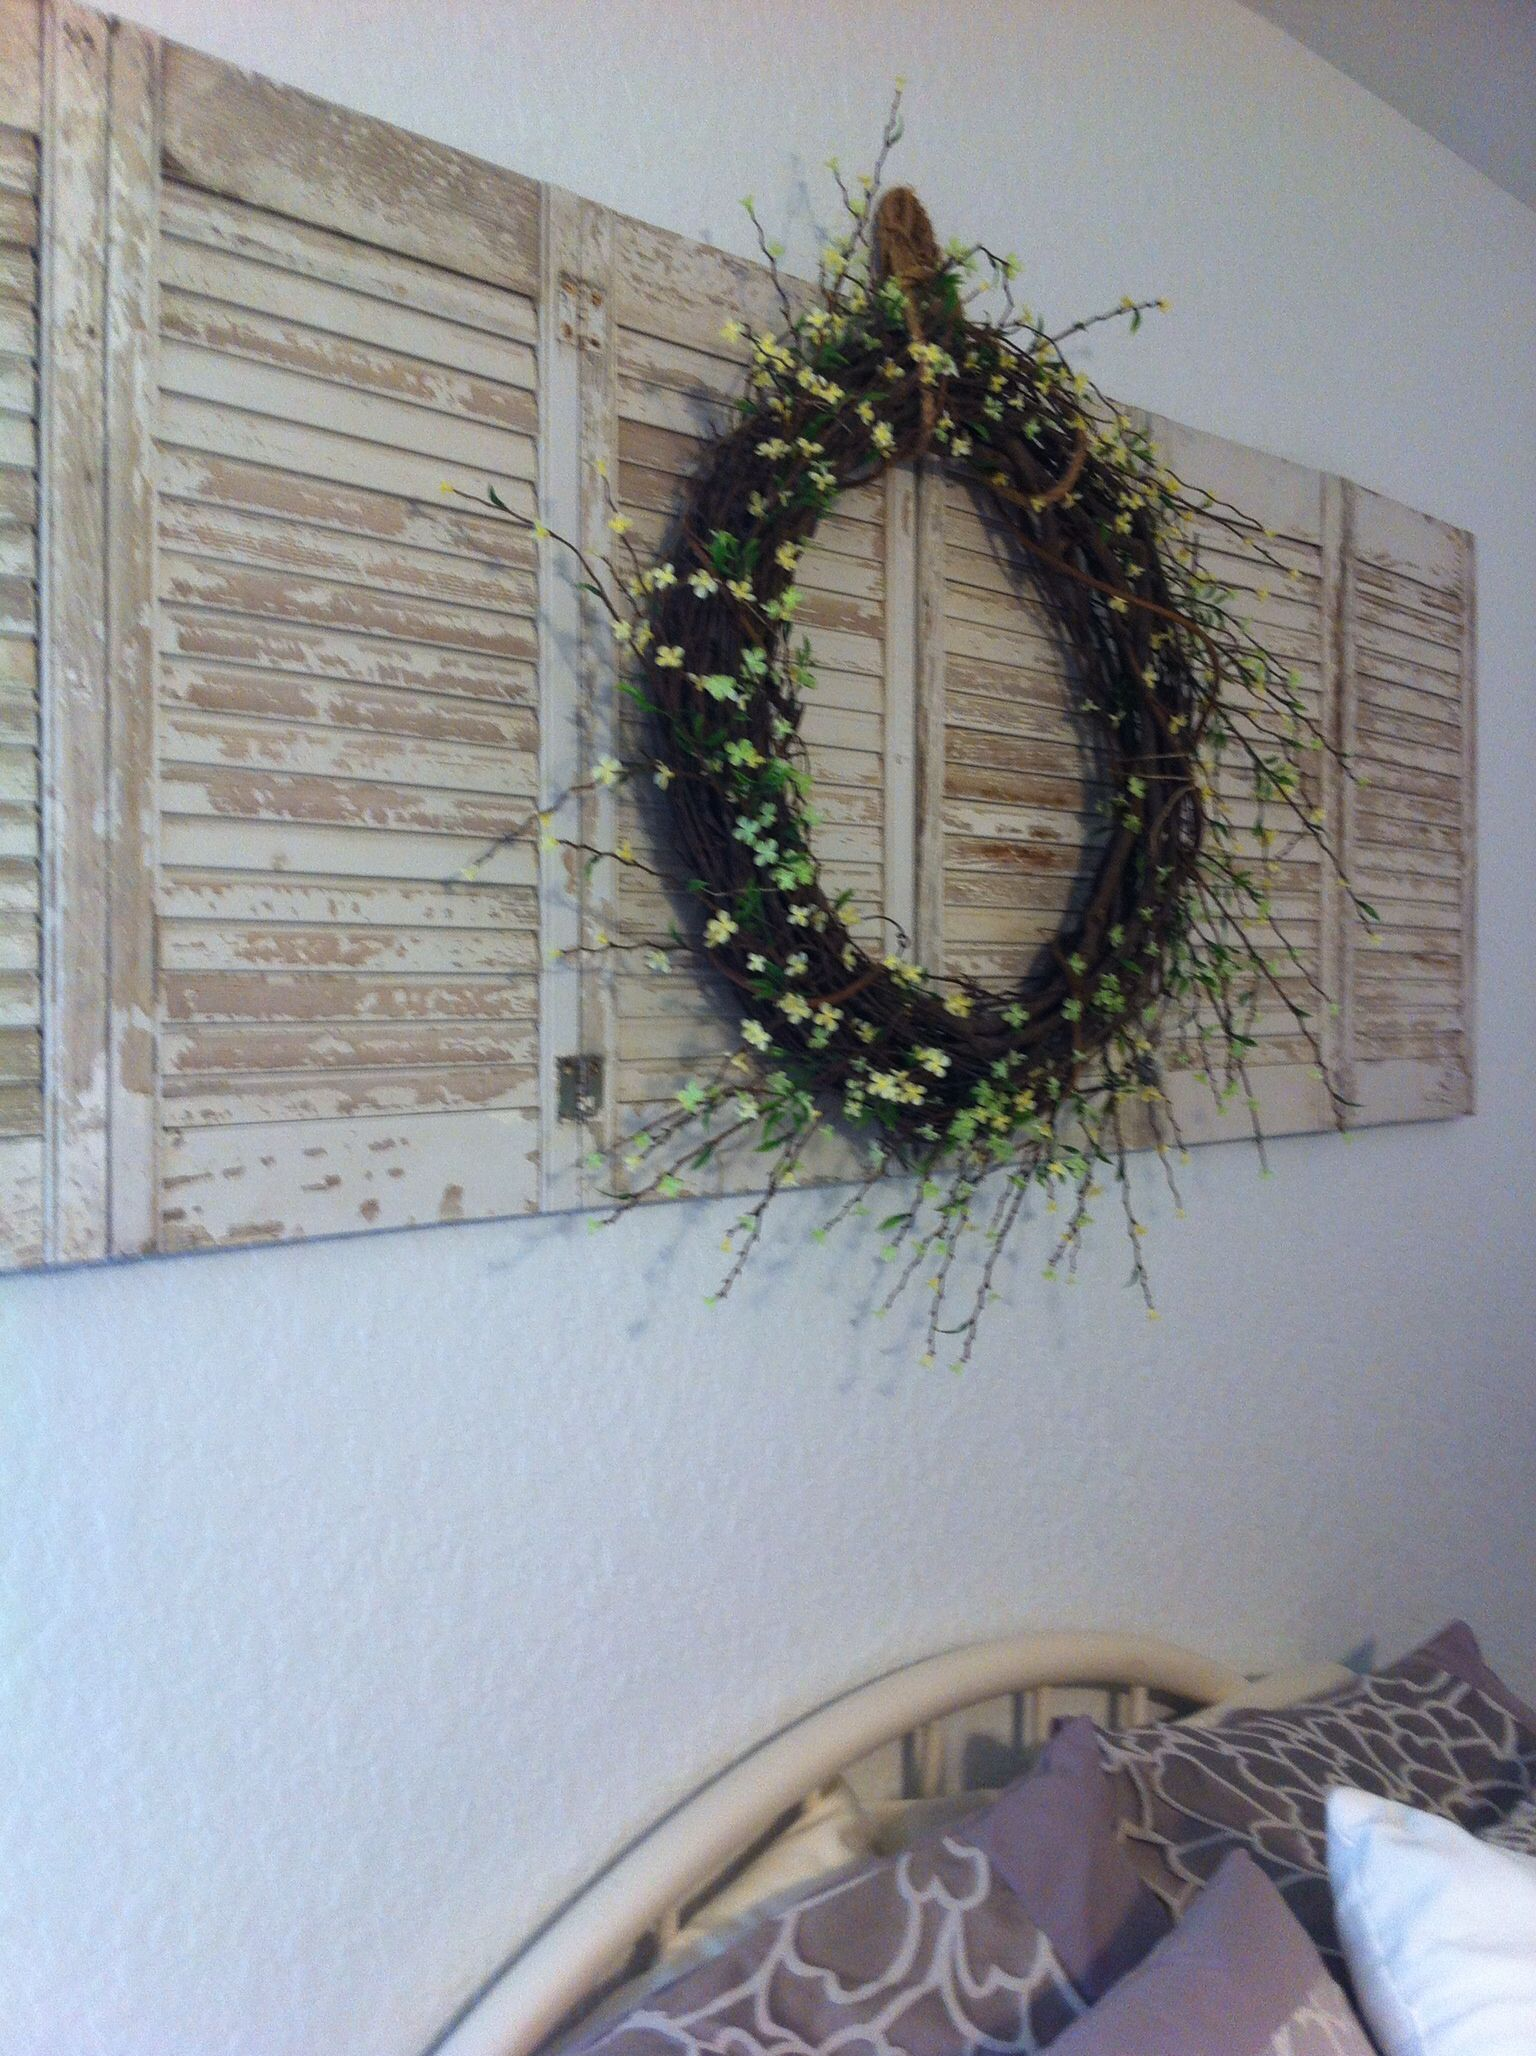 Pictures Wall Decor Ideas Diy Wreath On Shutters For Above Bed Decor Successes